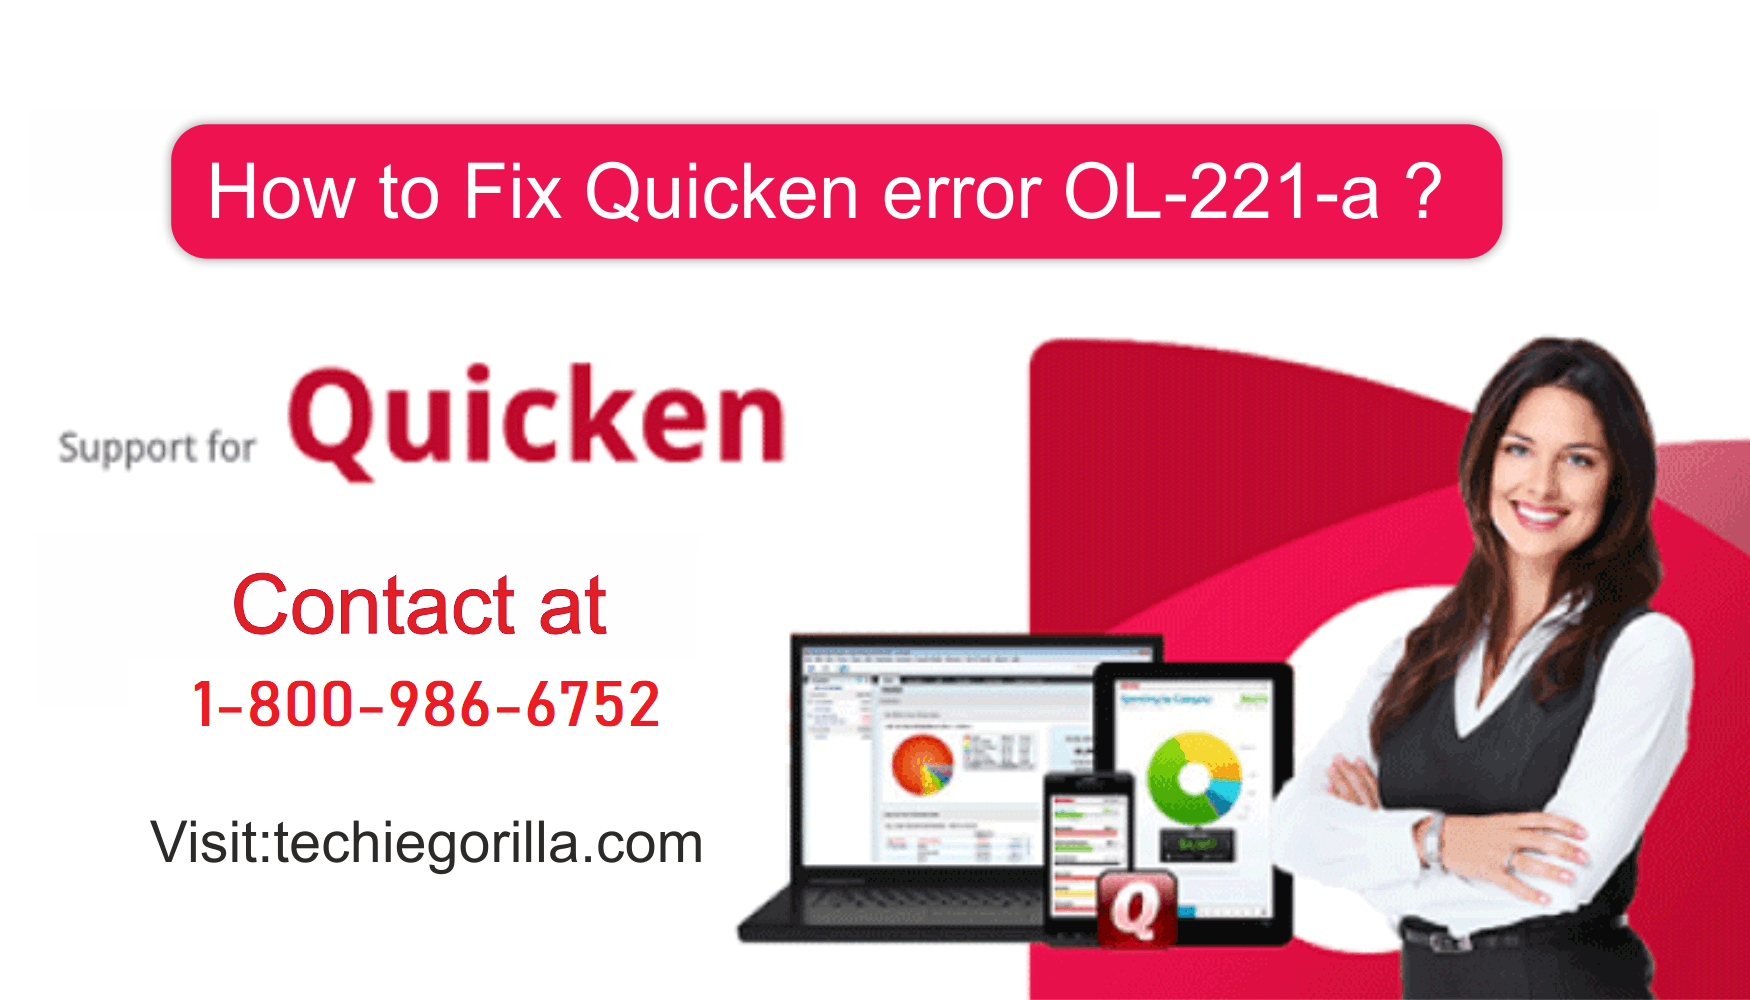 [Resolved] How to fix Quicken error OL-221-a ?